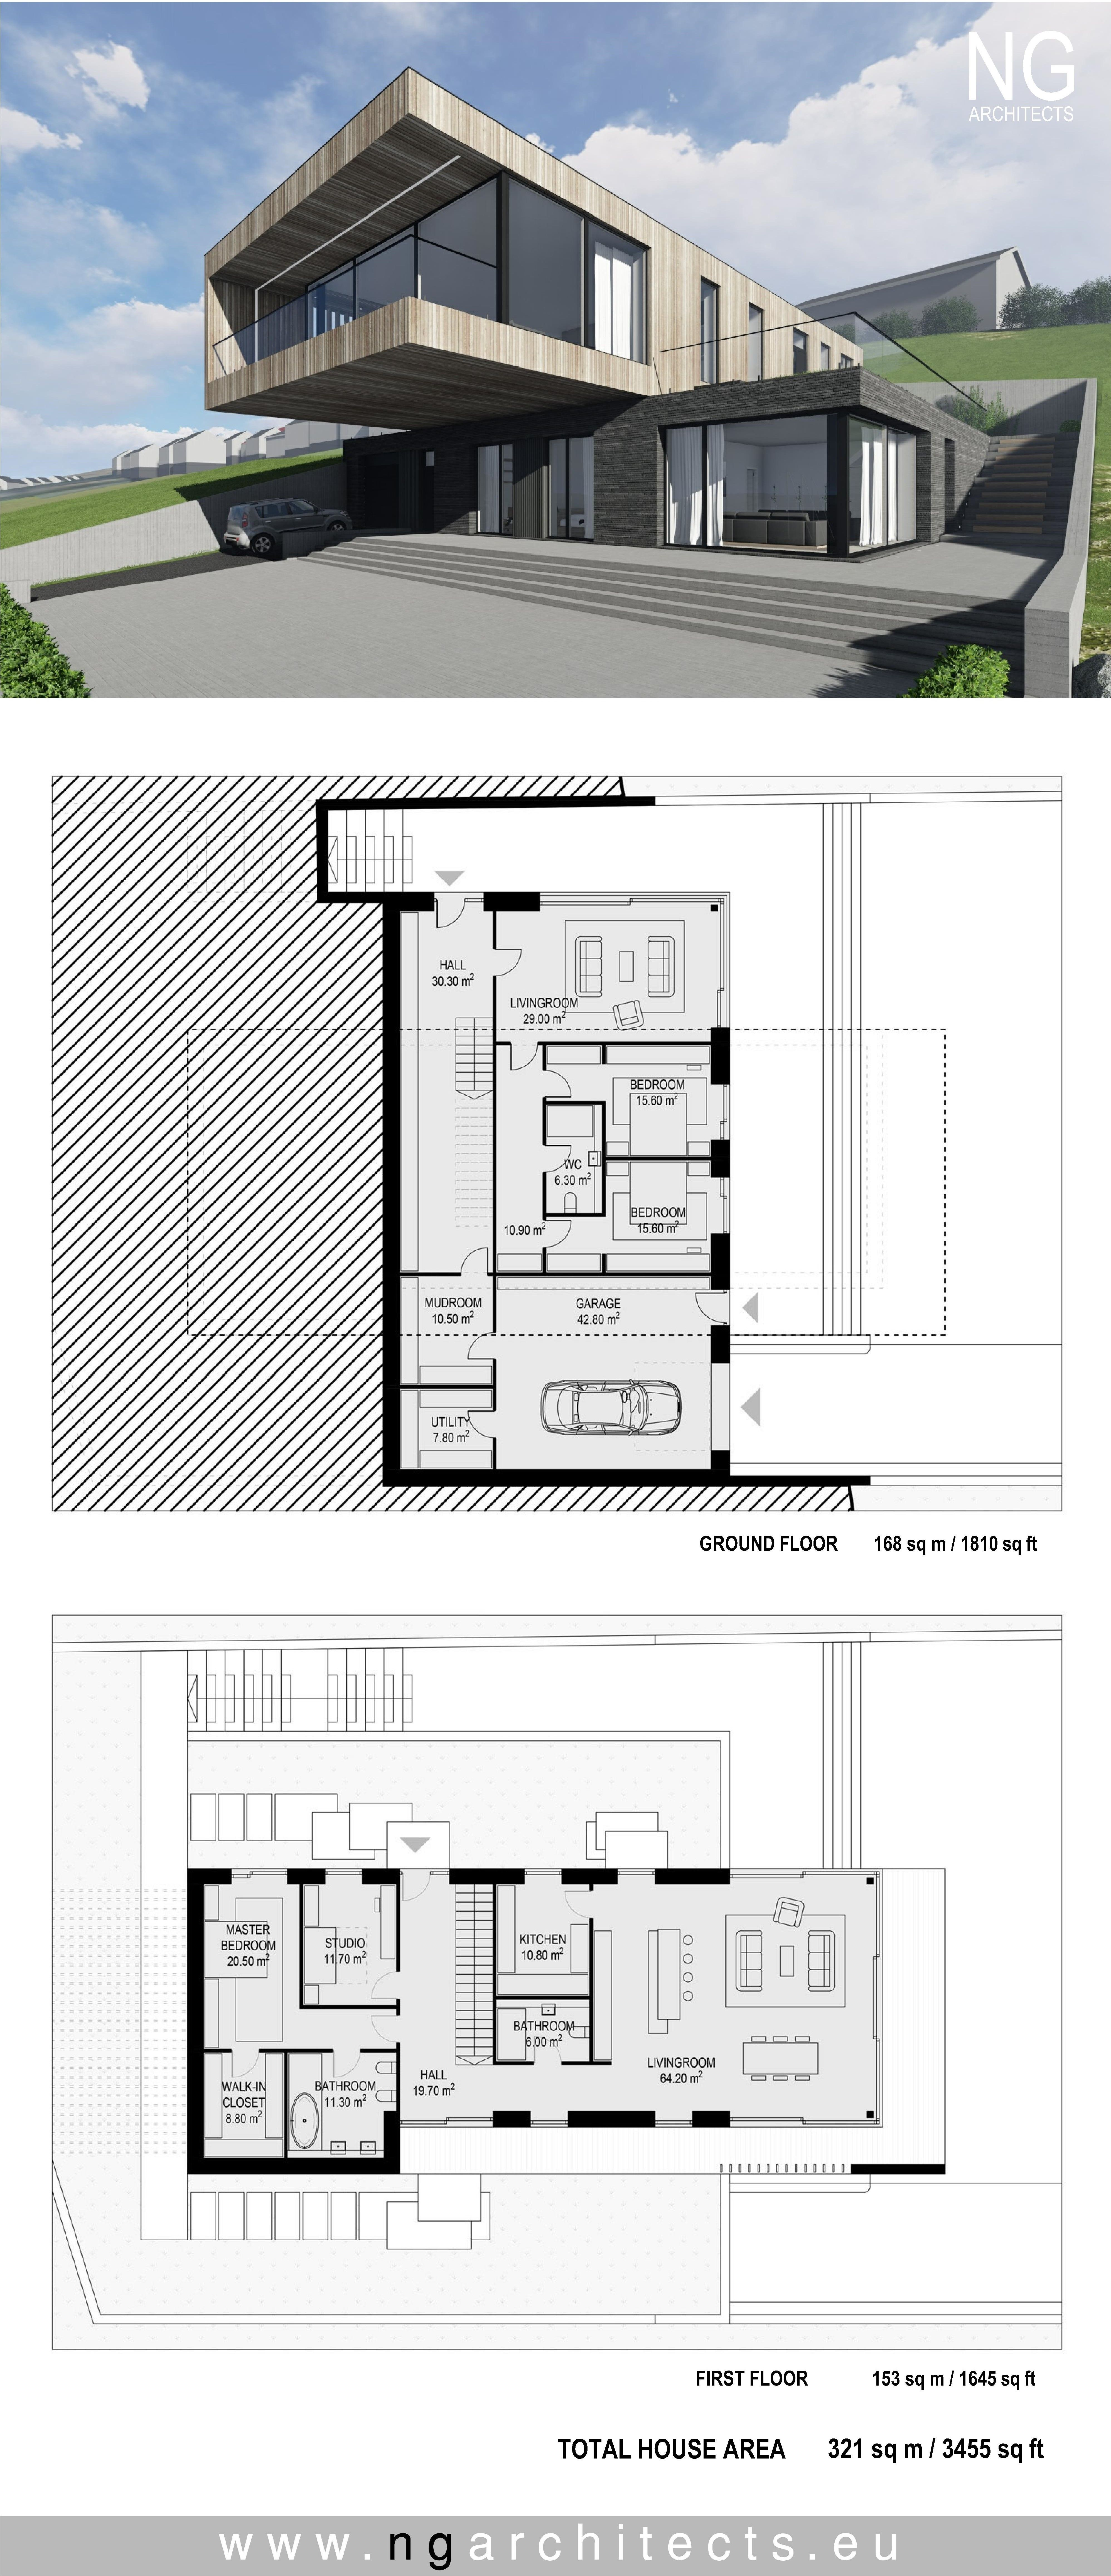 Modern House Plan Villa In Faroe Island By NG Architects Www.ngarchitects.eu Design Inspirations